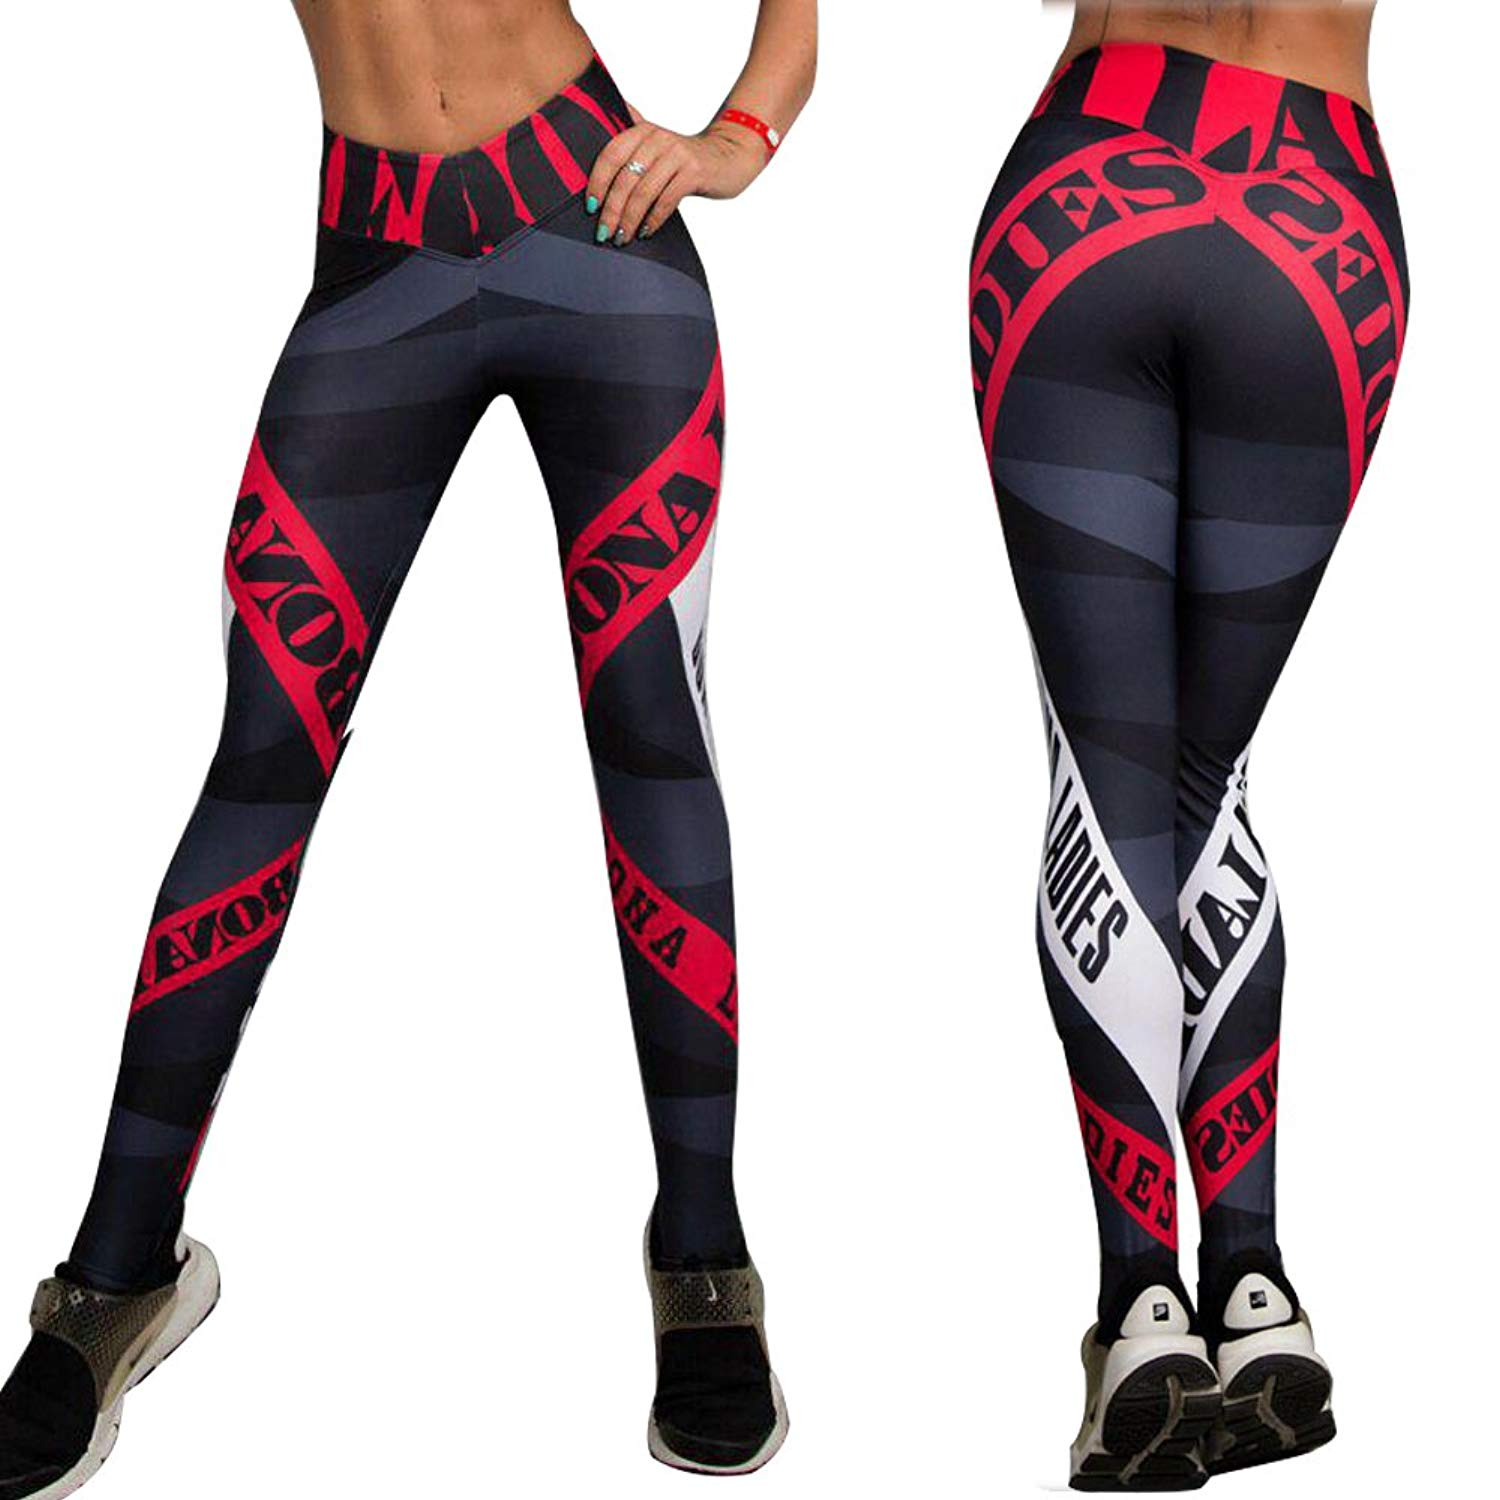 dbb6b35d0a5a15 Get Quotations · ROSUN Women's Letter Print Yoga Pants Red Striped Gym  Sport Leggings Tight Fitness Athletic Hips Leggings